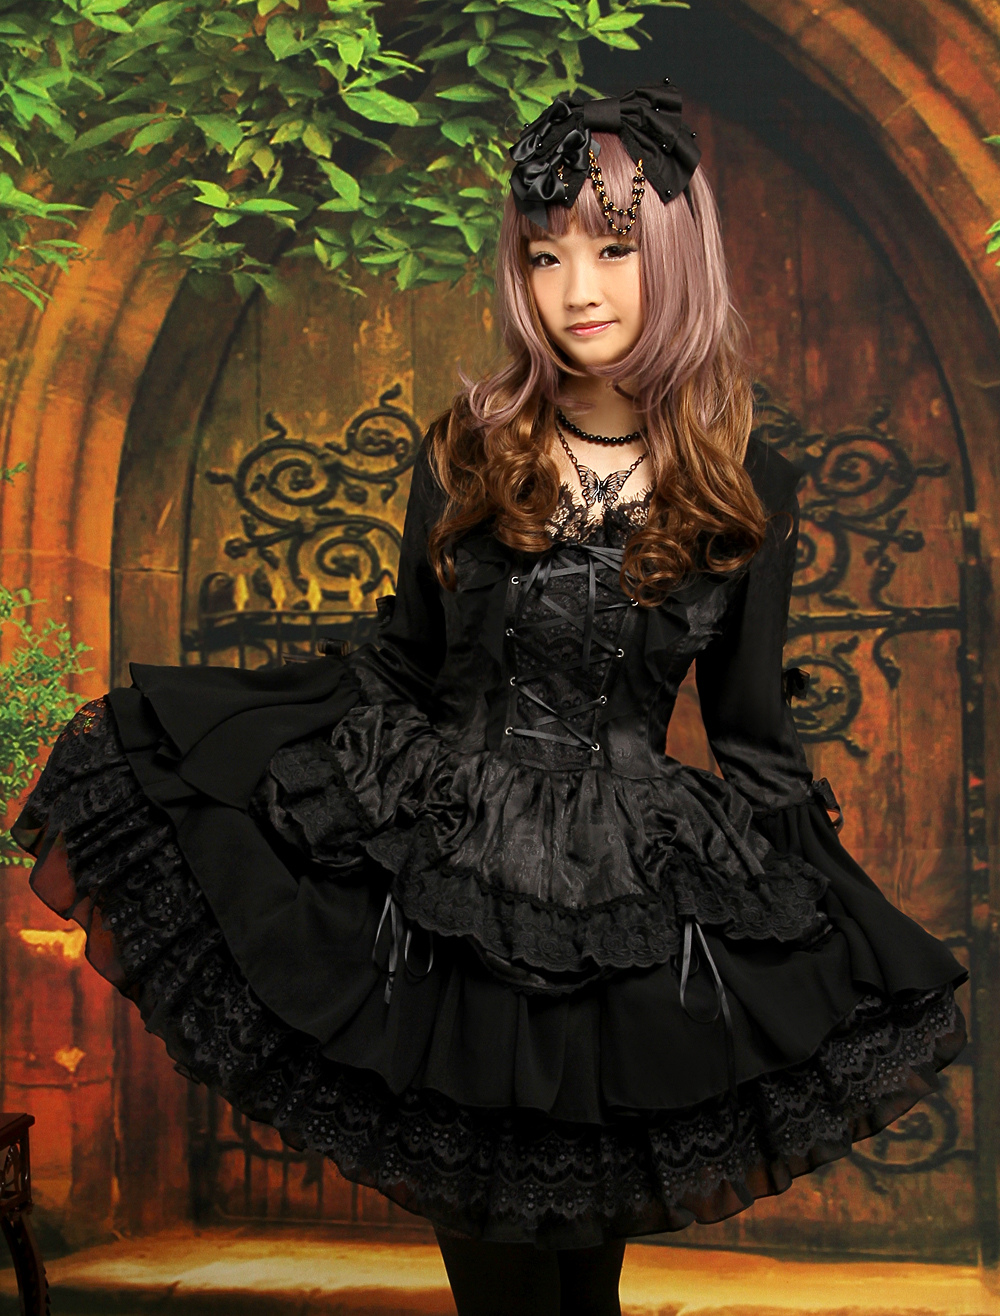 Classic Black Lolita One-piece Dress Long Hime Sleeves Lace Up Layers Lace Trim steampunk buy now online